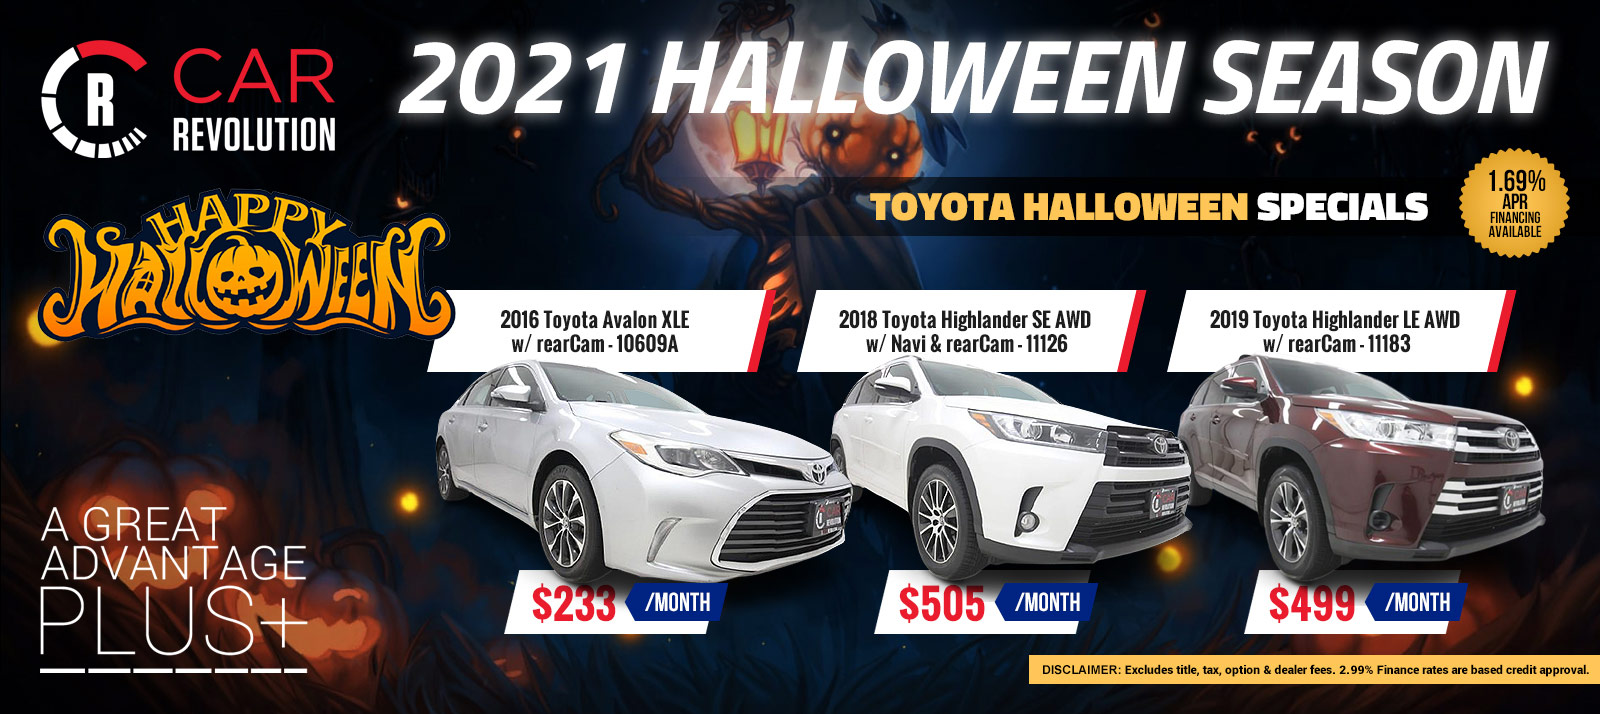 TOYOTA Halloween Season Specials!